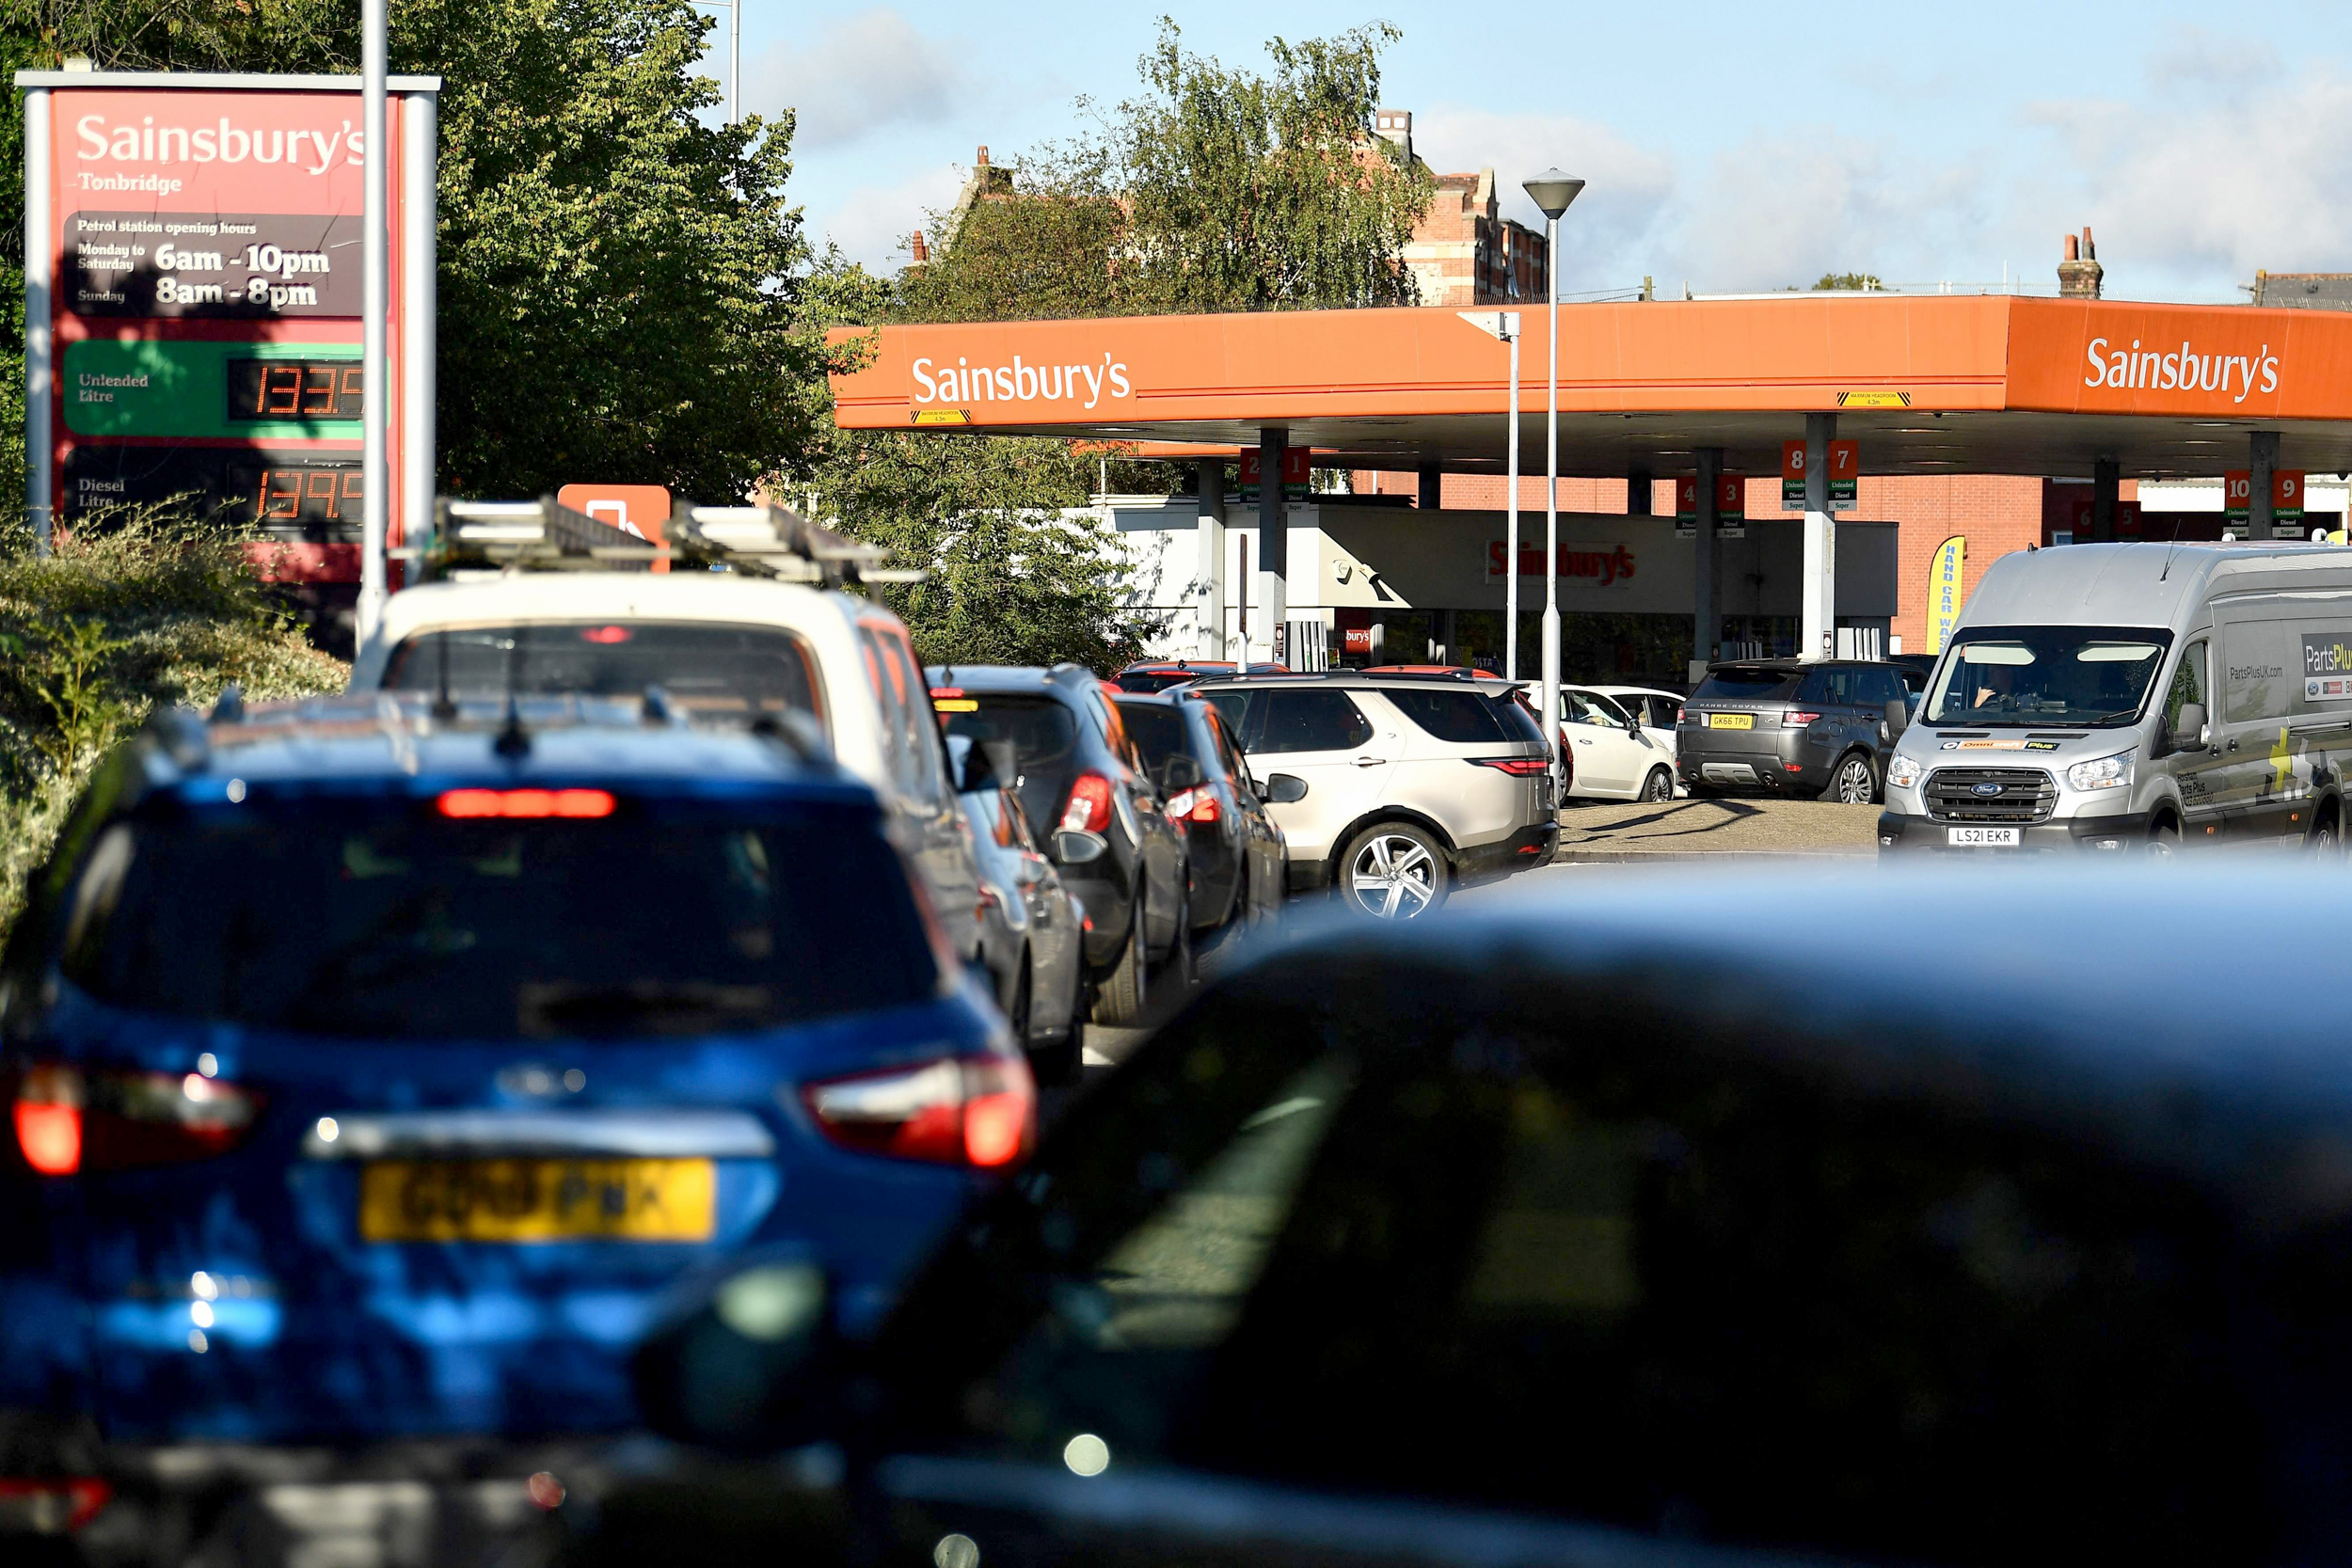 Britain urged not to panic as shortages close gas stations, threaten food supplies